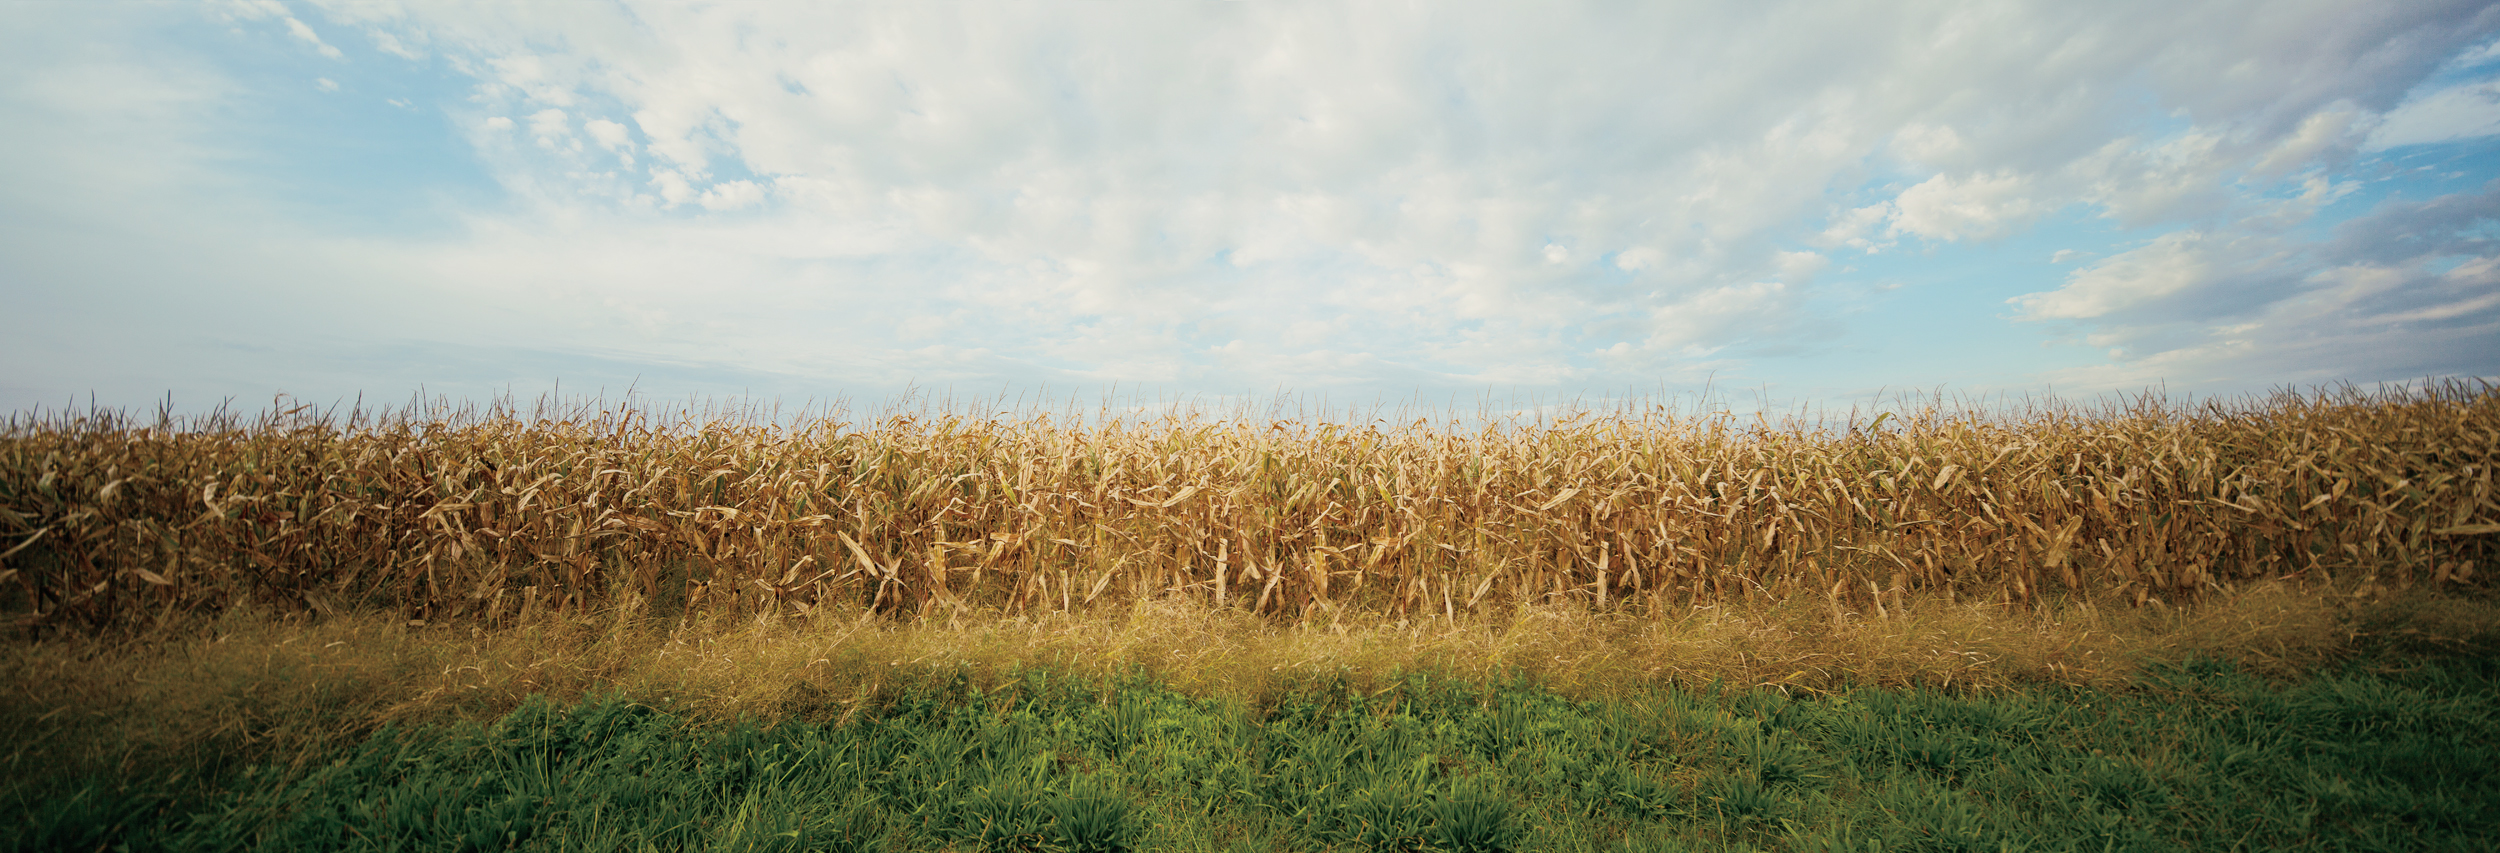 Sagaponack Corn, 2018, photo on aluminum, 72 x 23.75 in, edition of 5 (2 available), $5,000